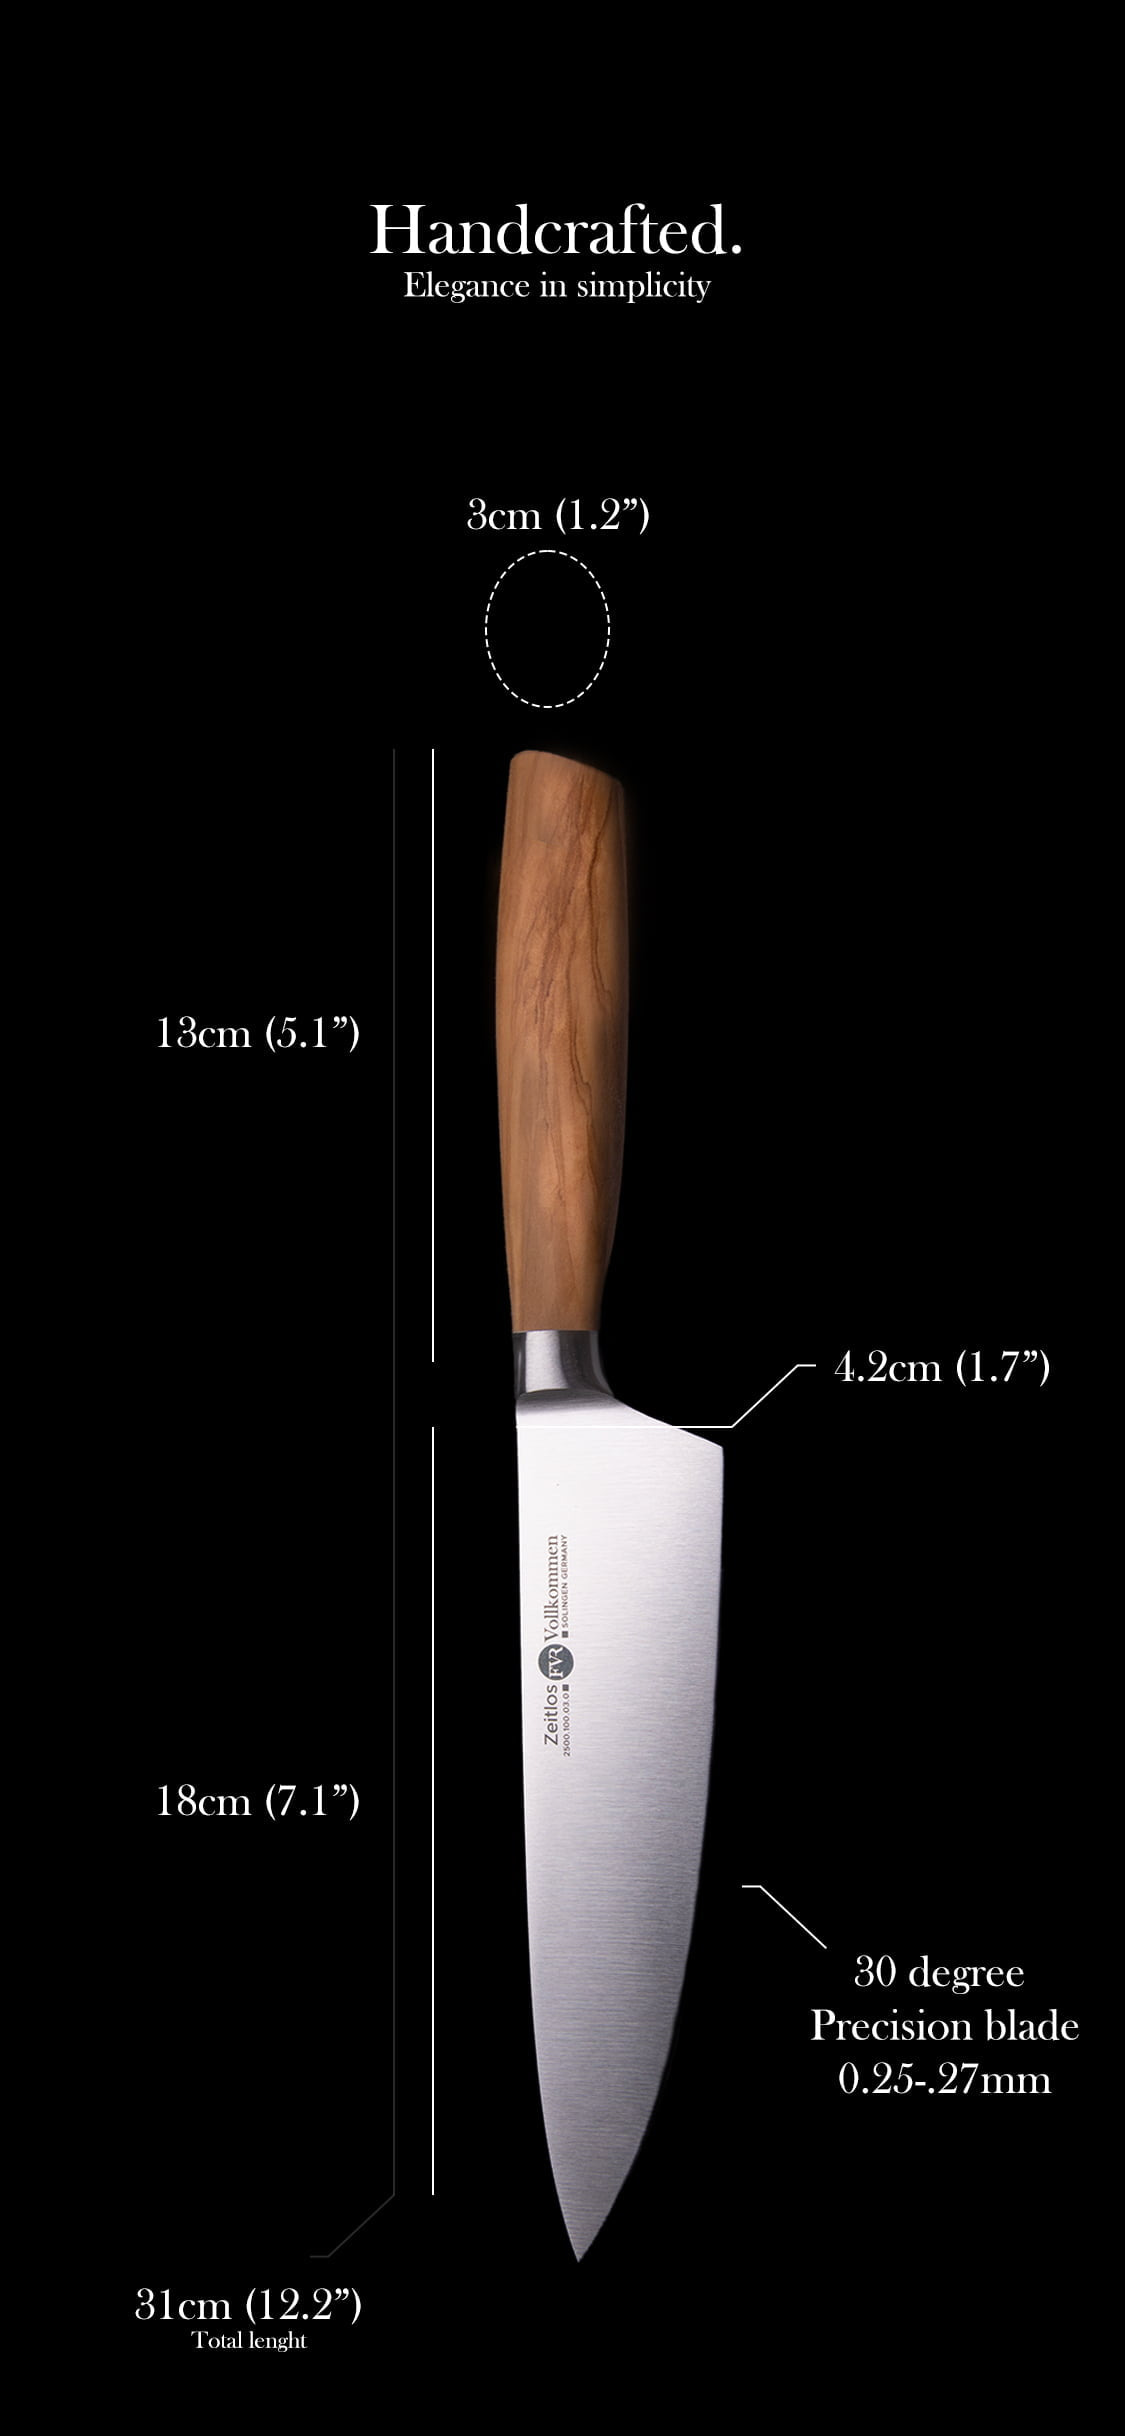 Chef's Knife Specifications